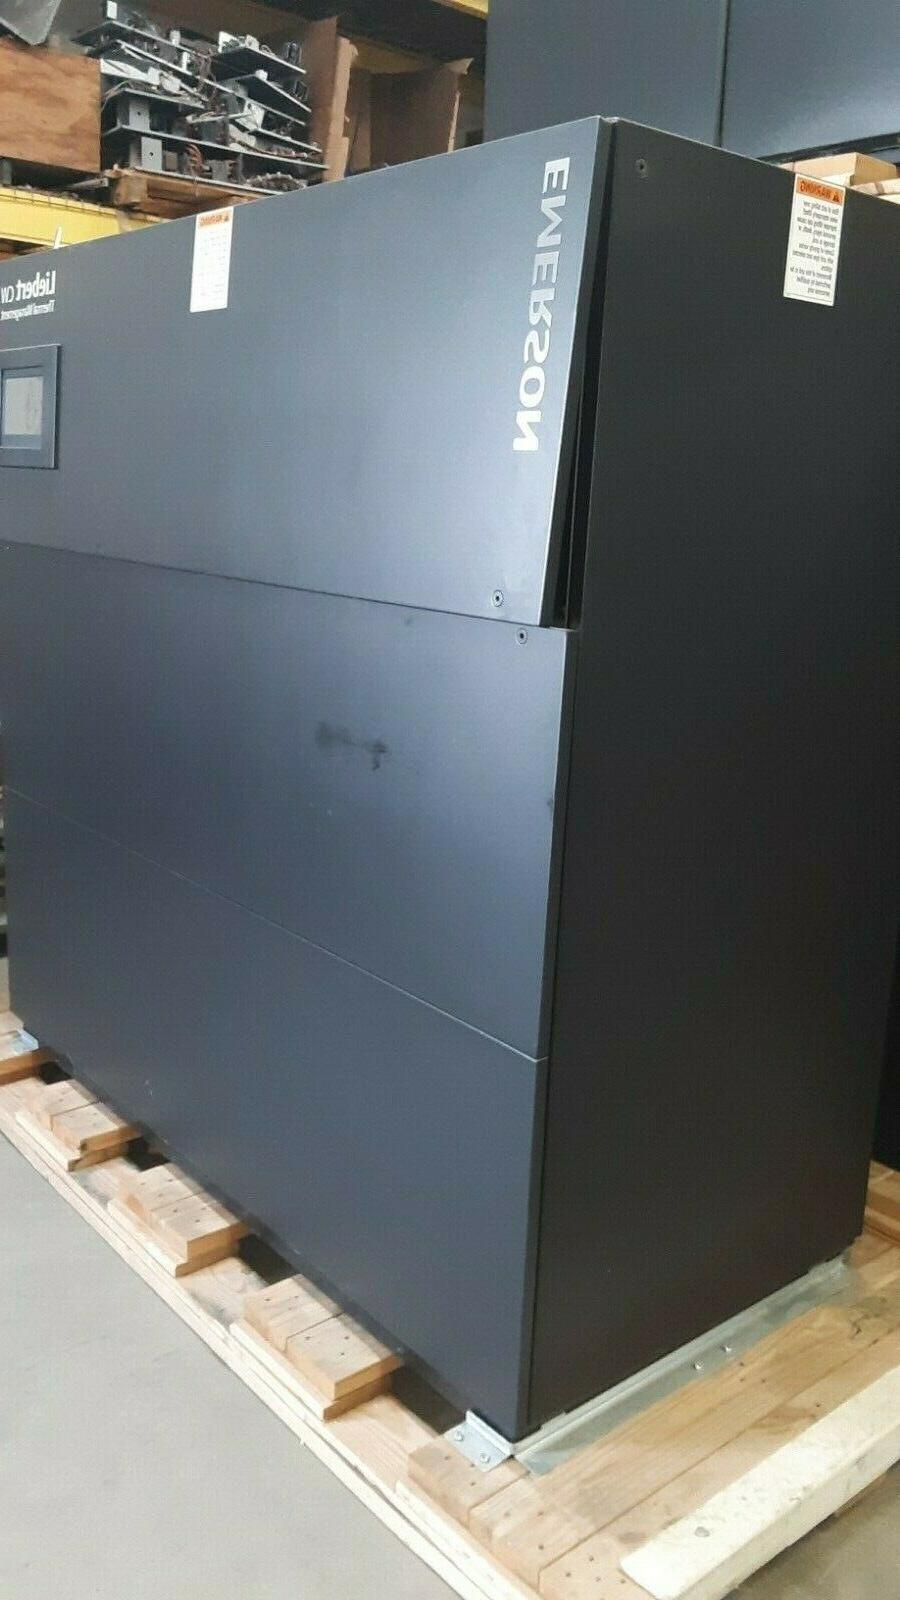 Liebert CW W/Thermal Air Conditioner, Nominal Chilledflow, 460